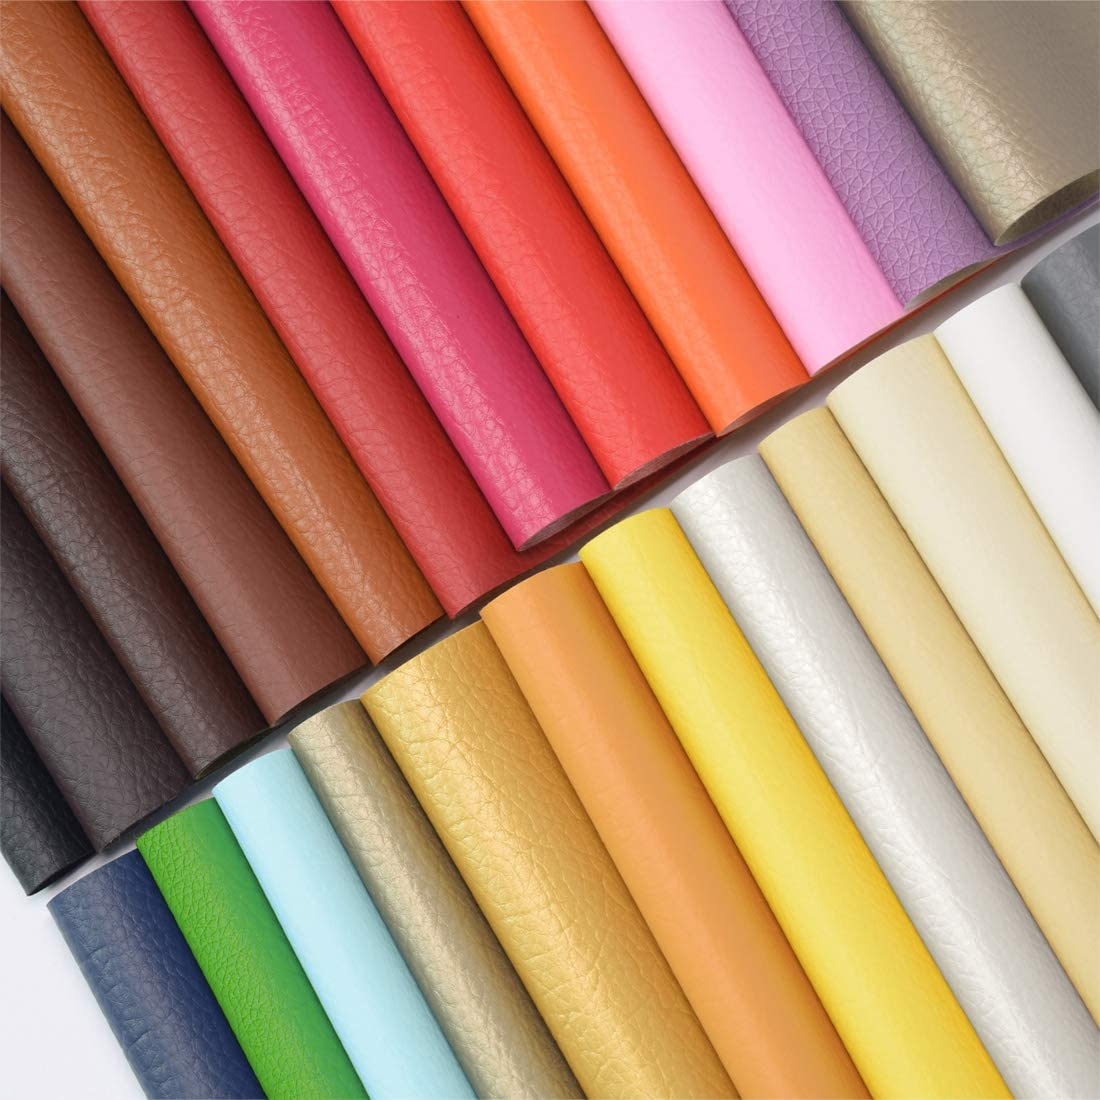 ZIIYAN 24 Pieces 8x13.4(20x34cm) Colored Faux PU Leather Sheets Upholstery Crafts Fabric for Bag Making, Hat Making, Hair Crafts Making, DIY Jewelry Making, Sewing, Shoe Making